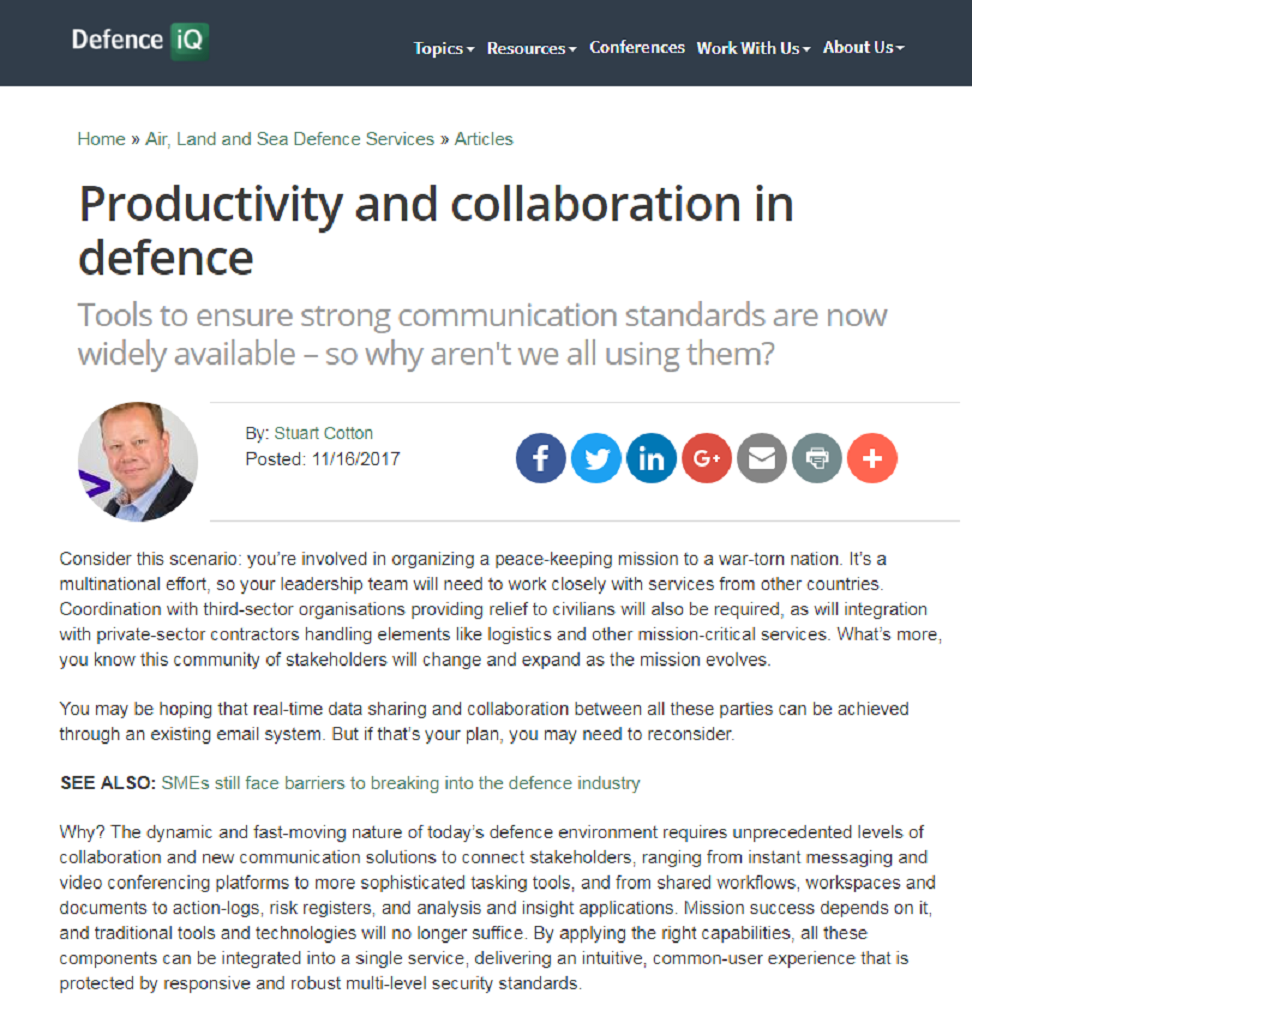 Productivity and Collaboration in Defense